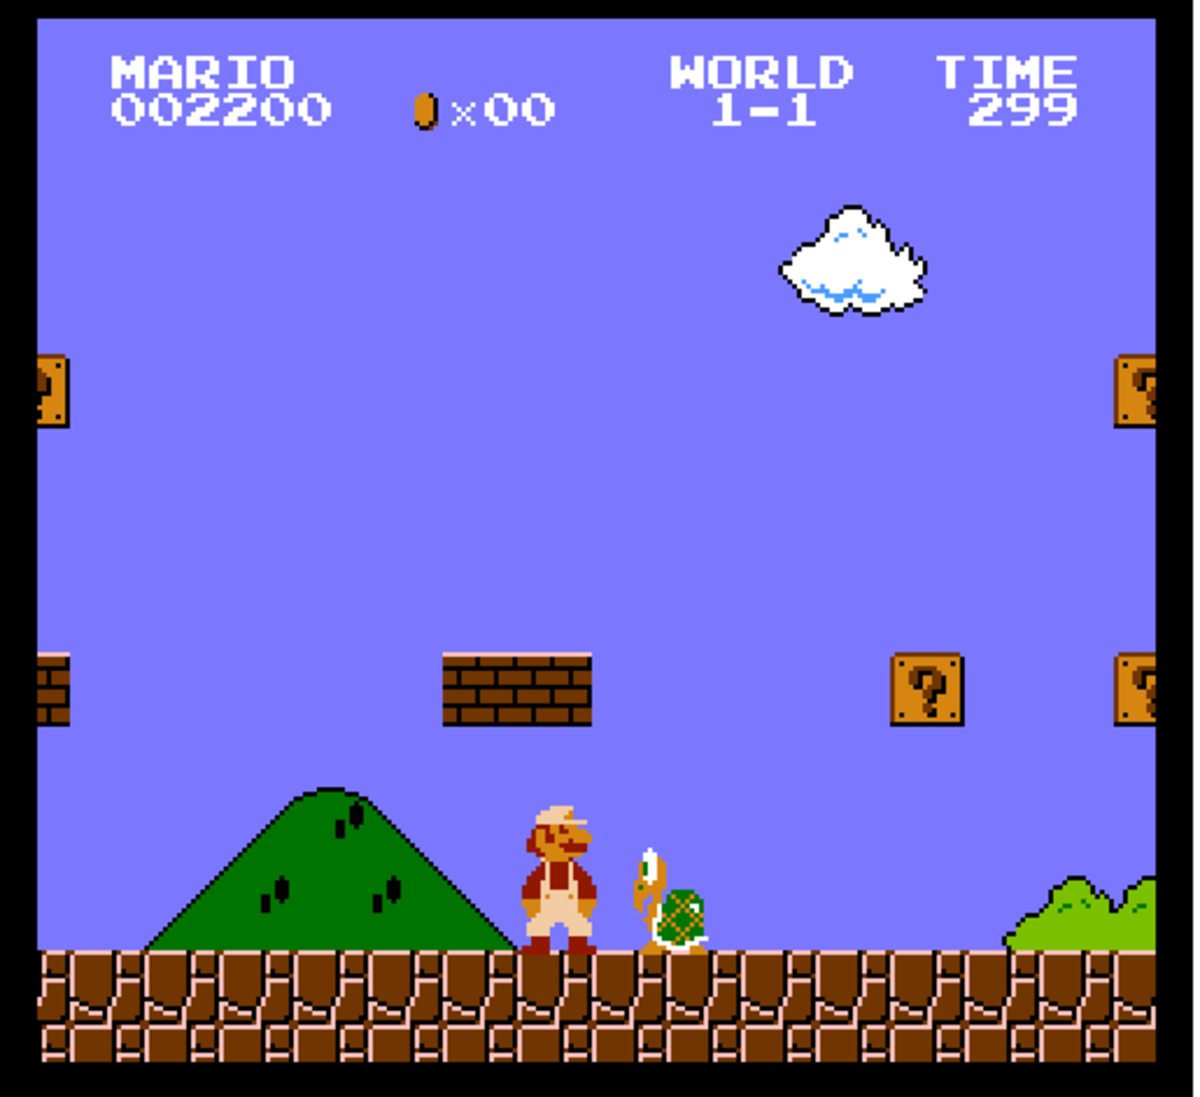 Top 20 Best Old School Games (8-bit) of 80's & 90's, Now Play for